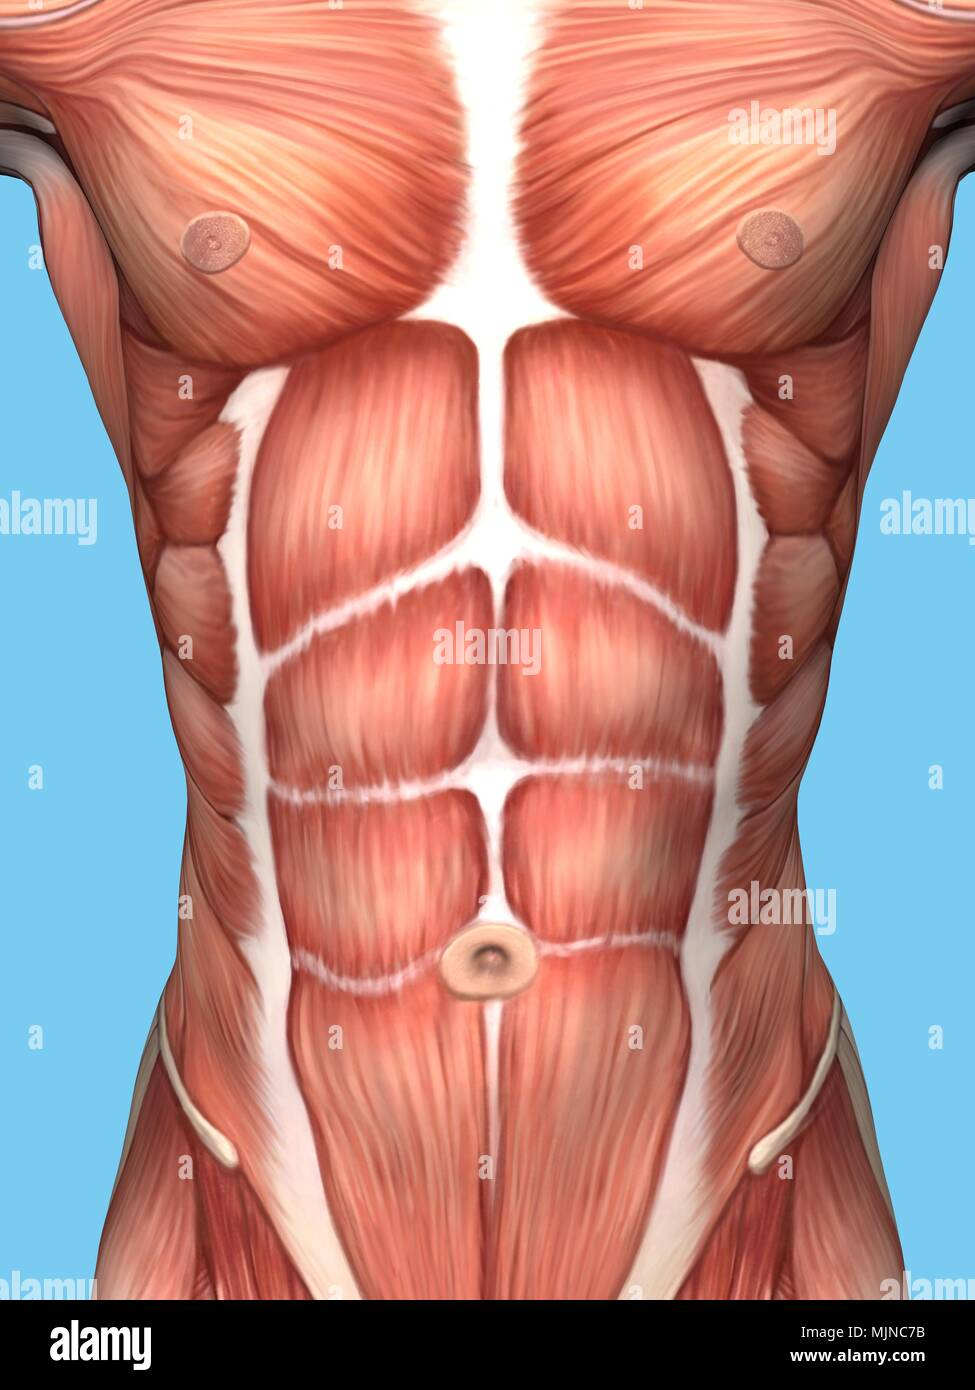 Anatomy Of Male Chest And Torso Featuring Major Muscular Groups